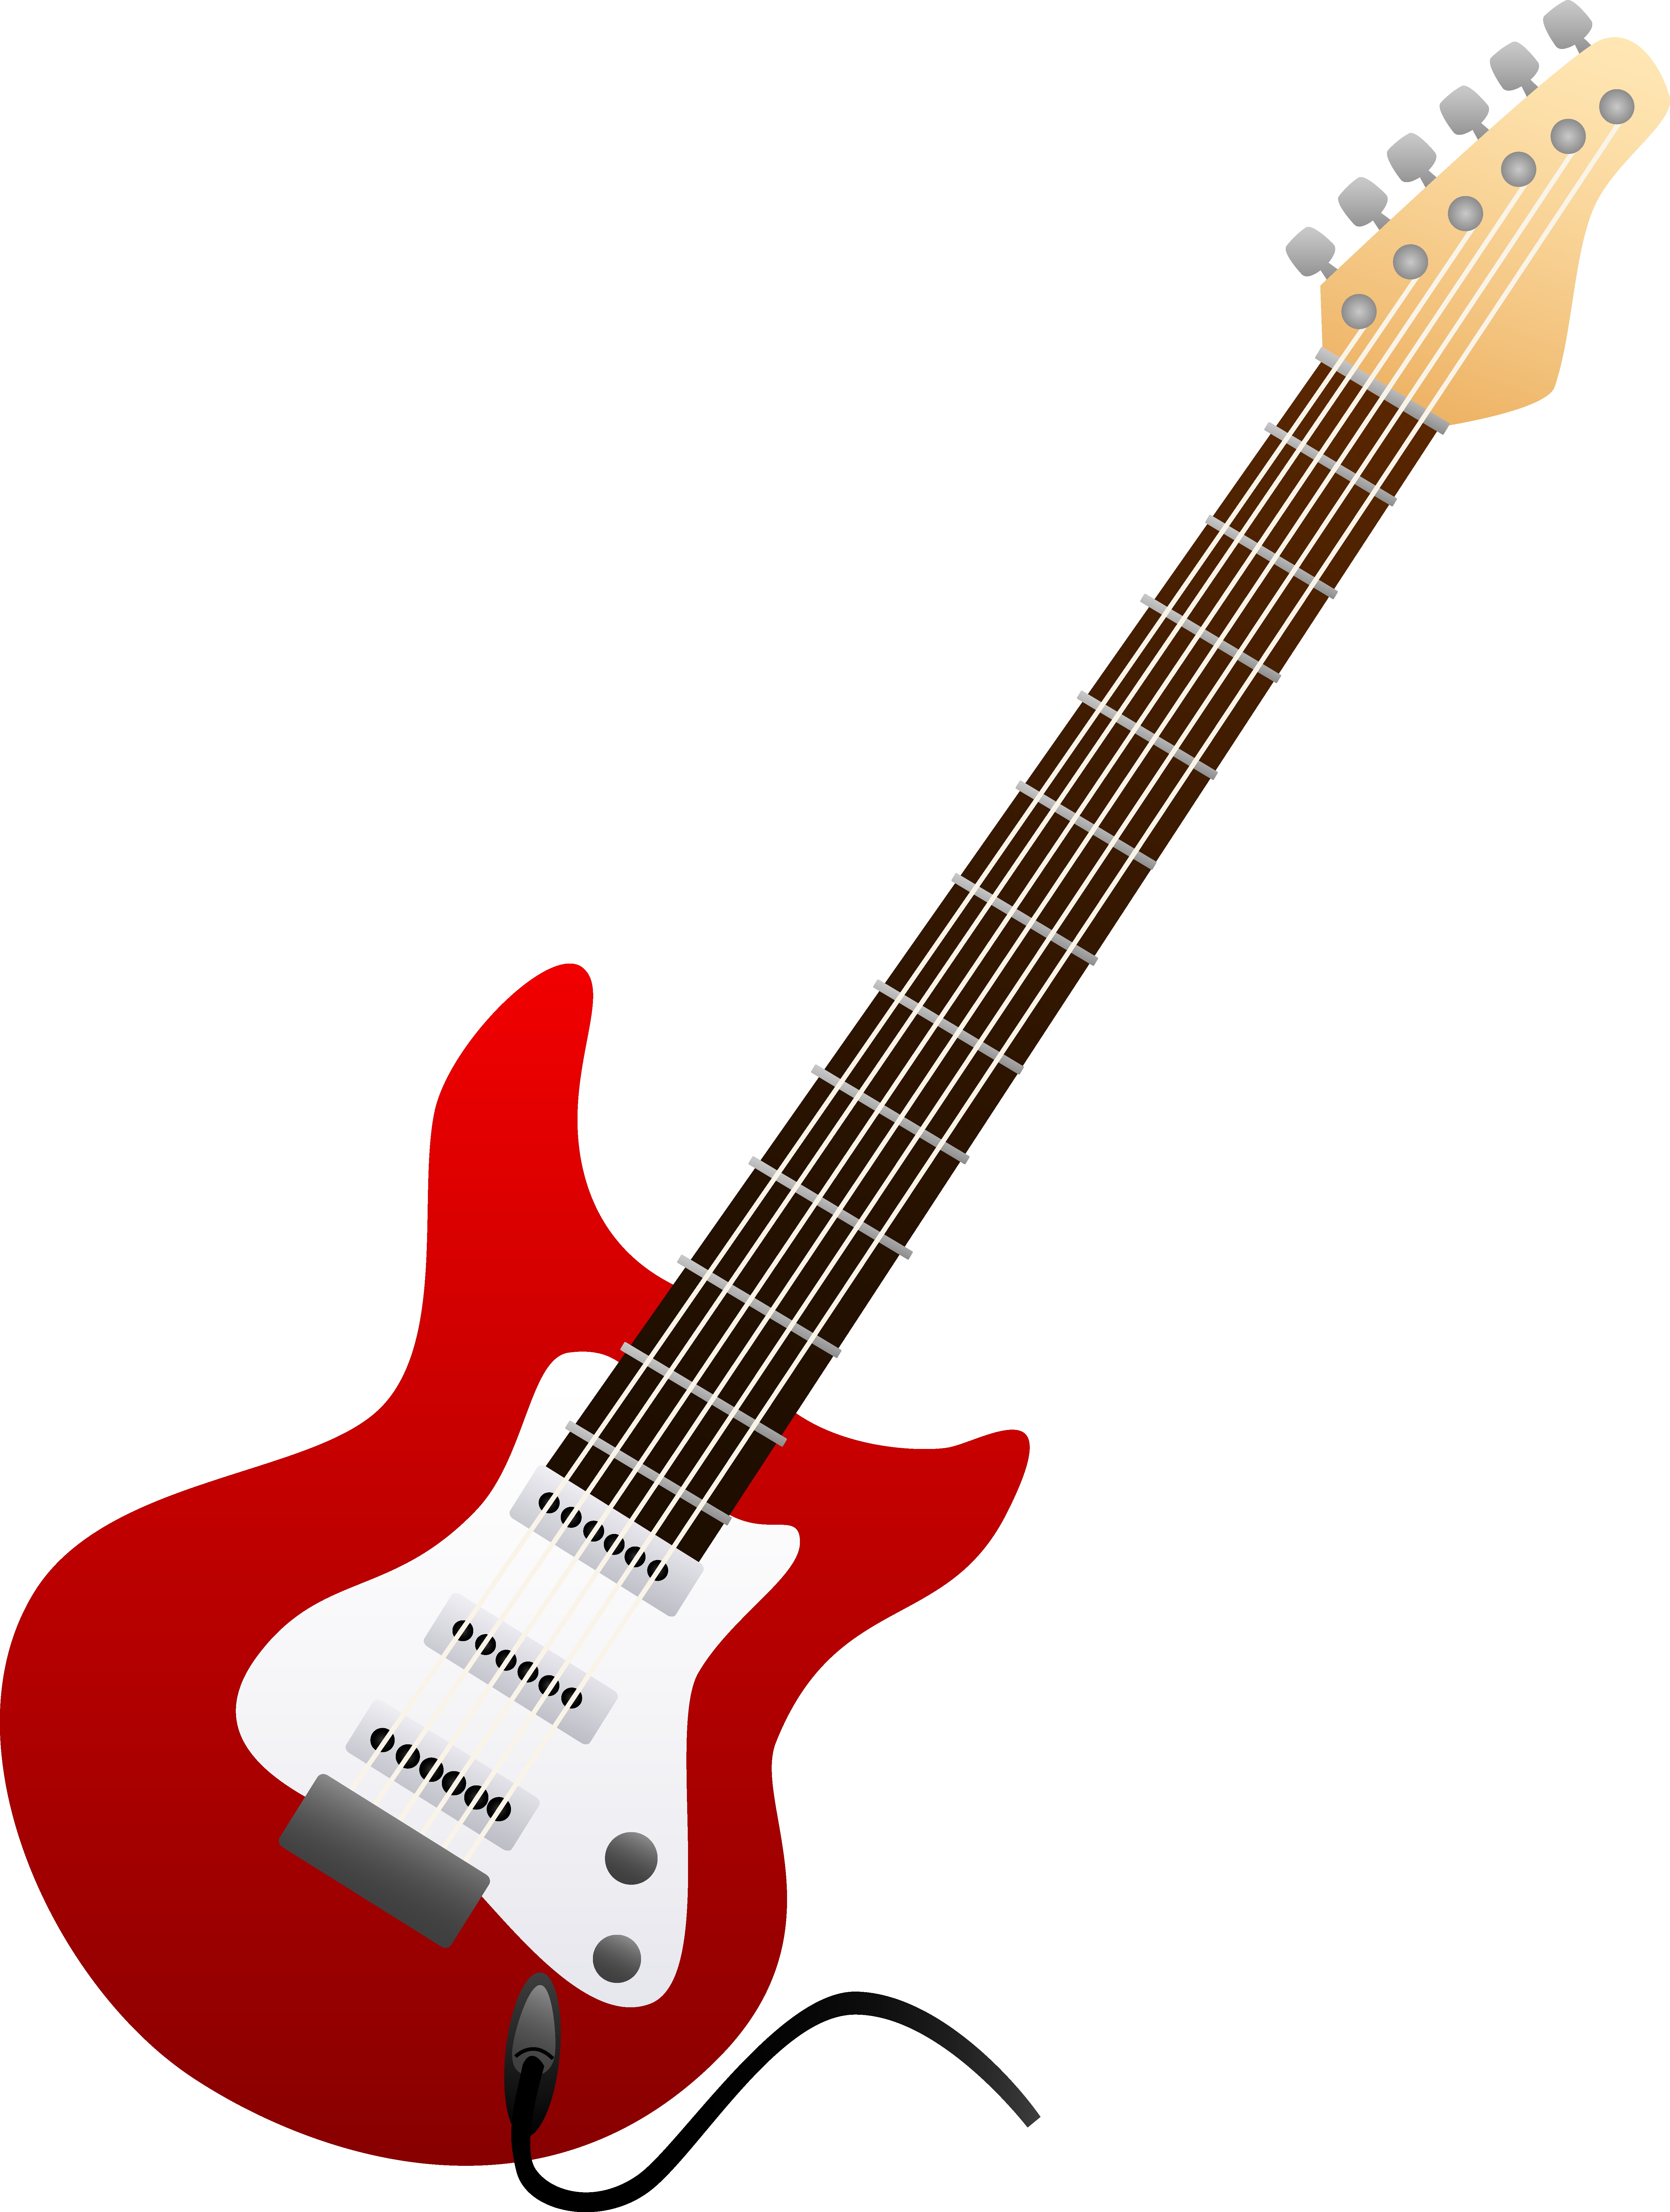 Electric Guitar Red image - vector clip art online, royalty free ...